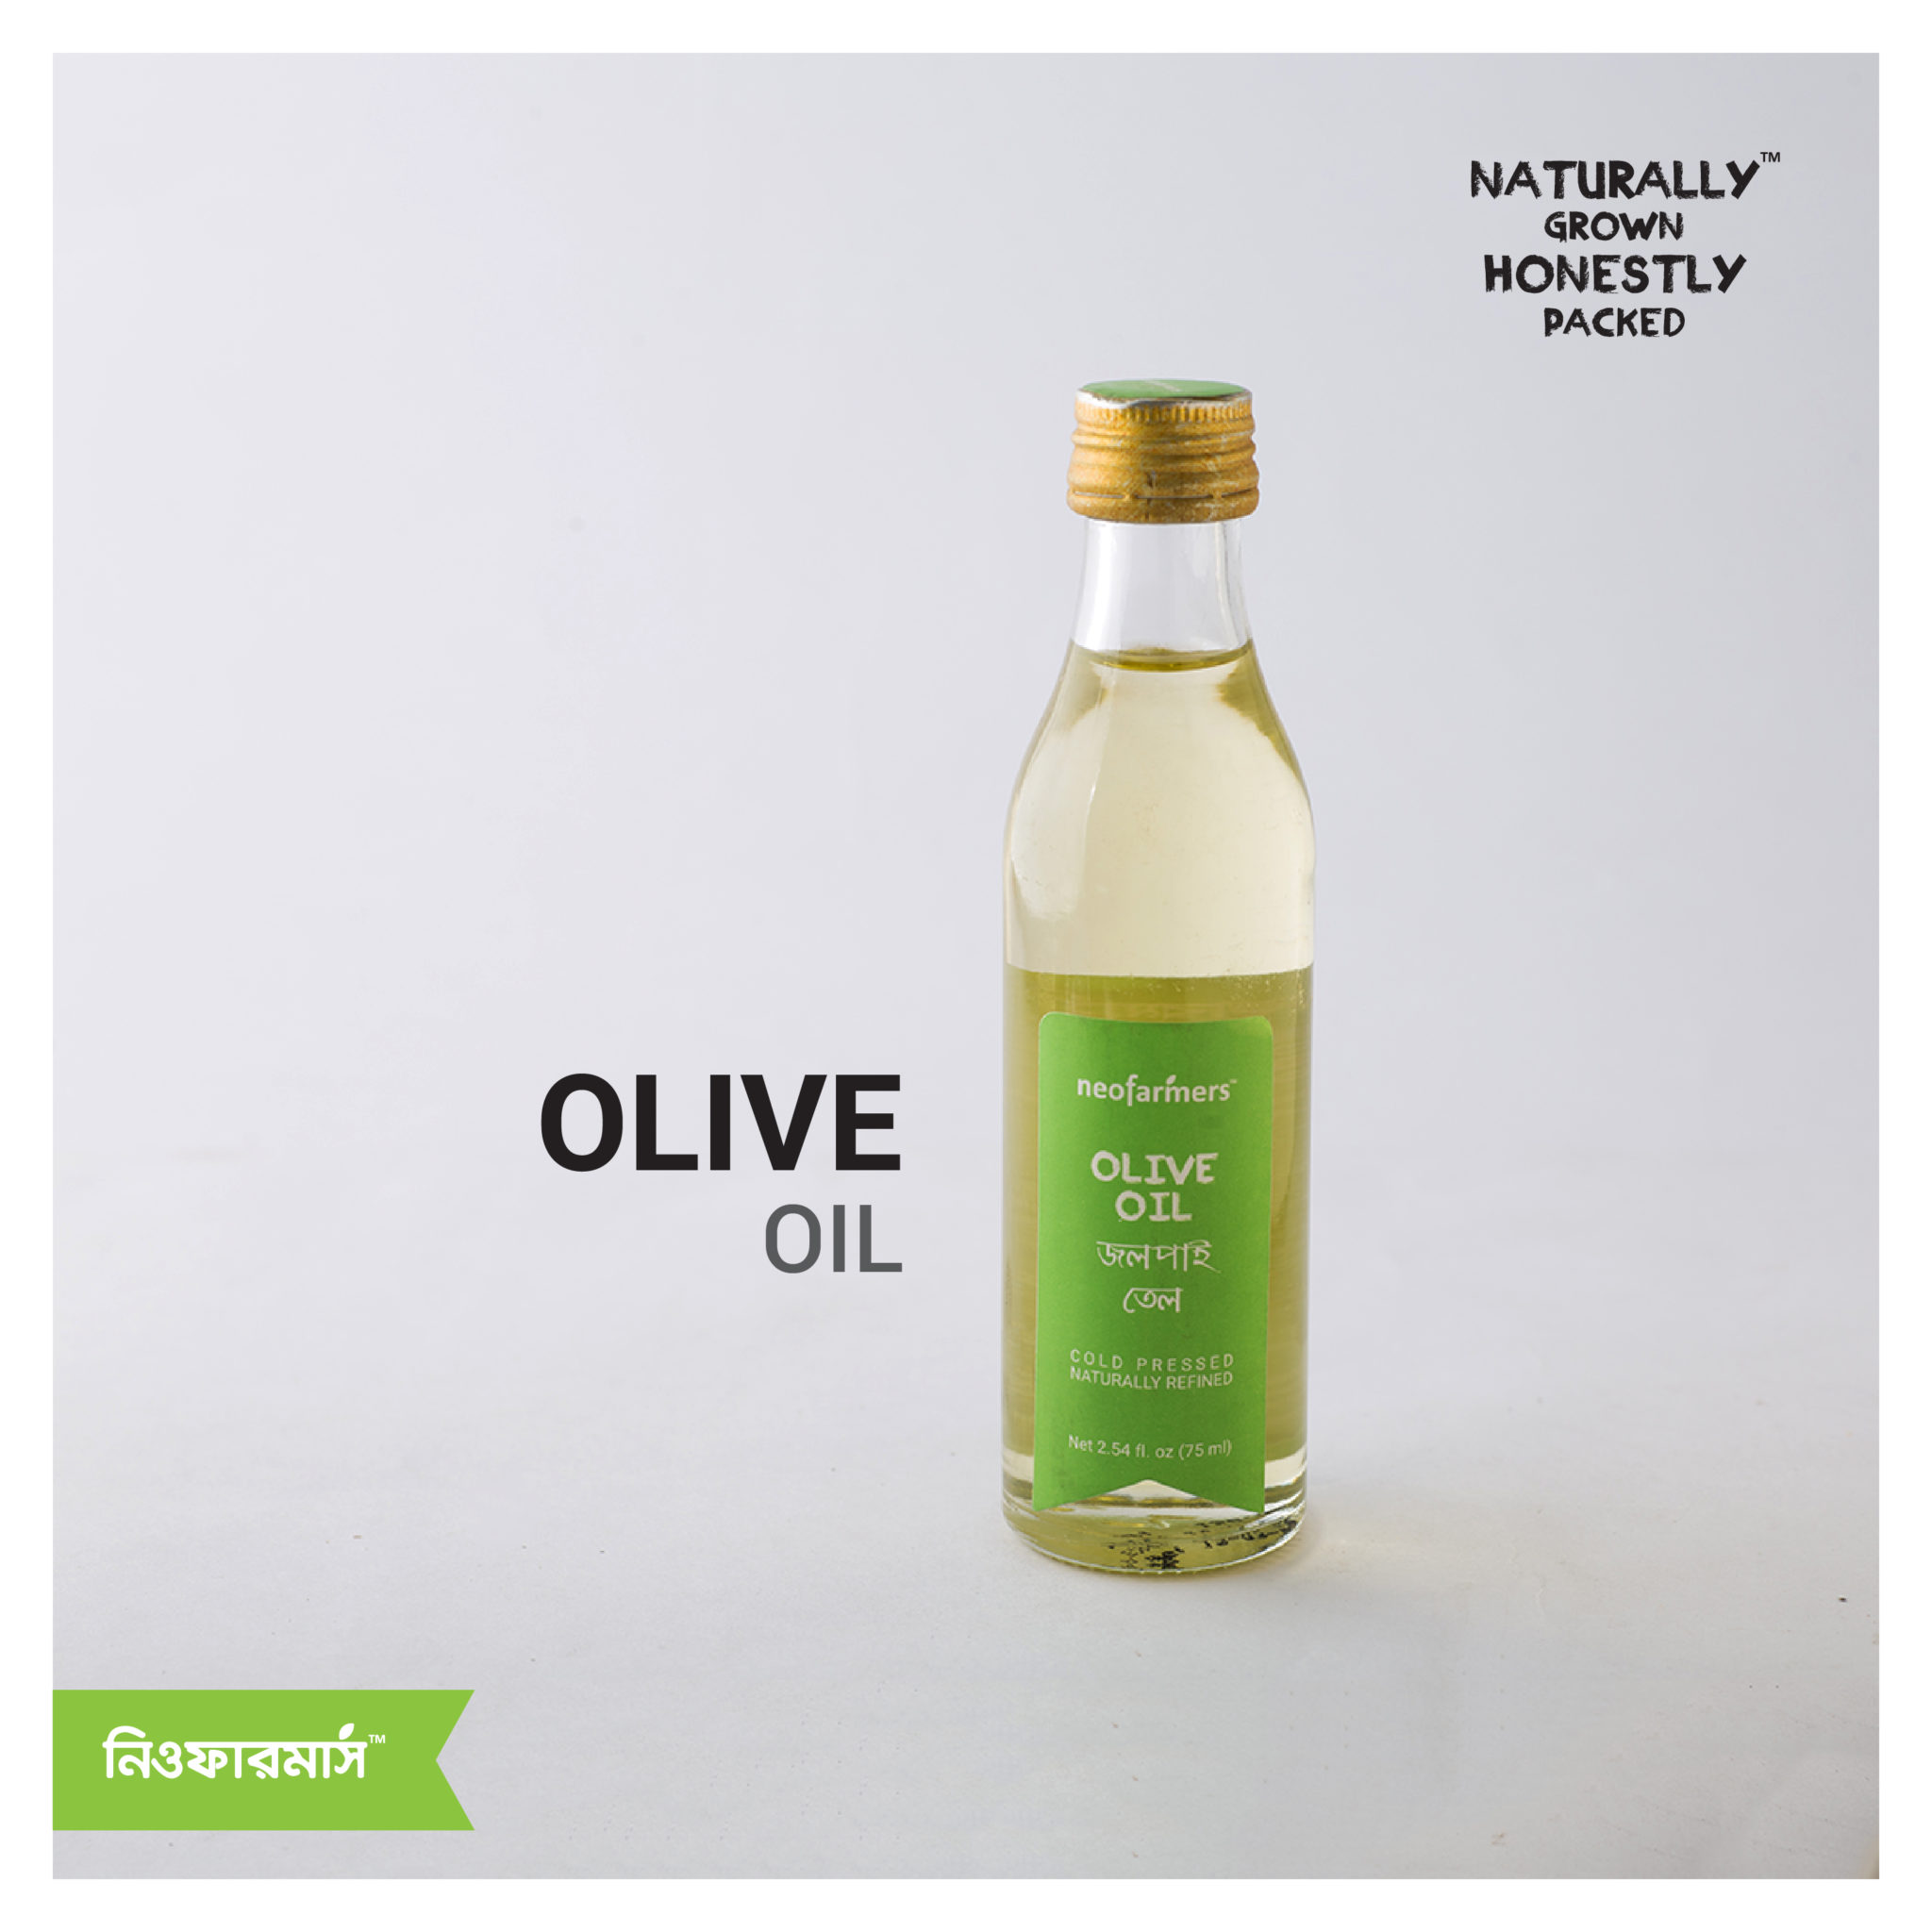 Olive Oil : A perfect natural moisturizer